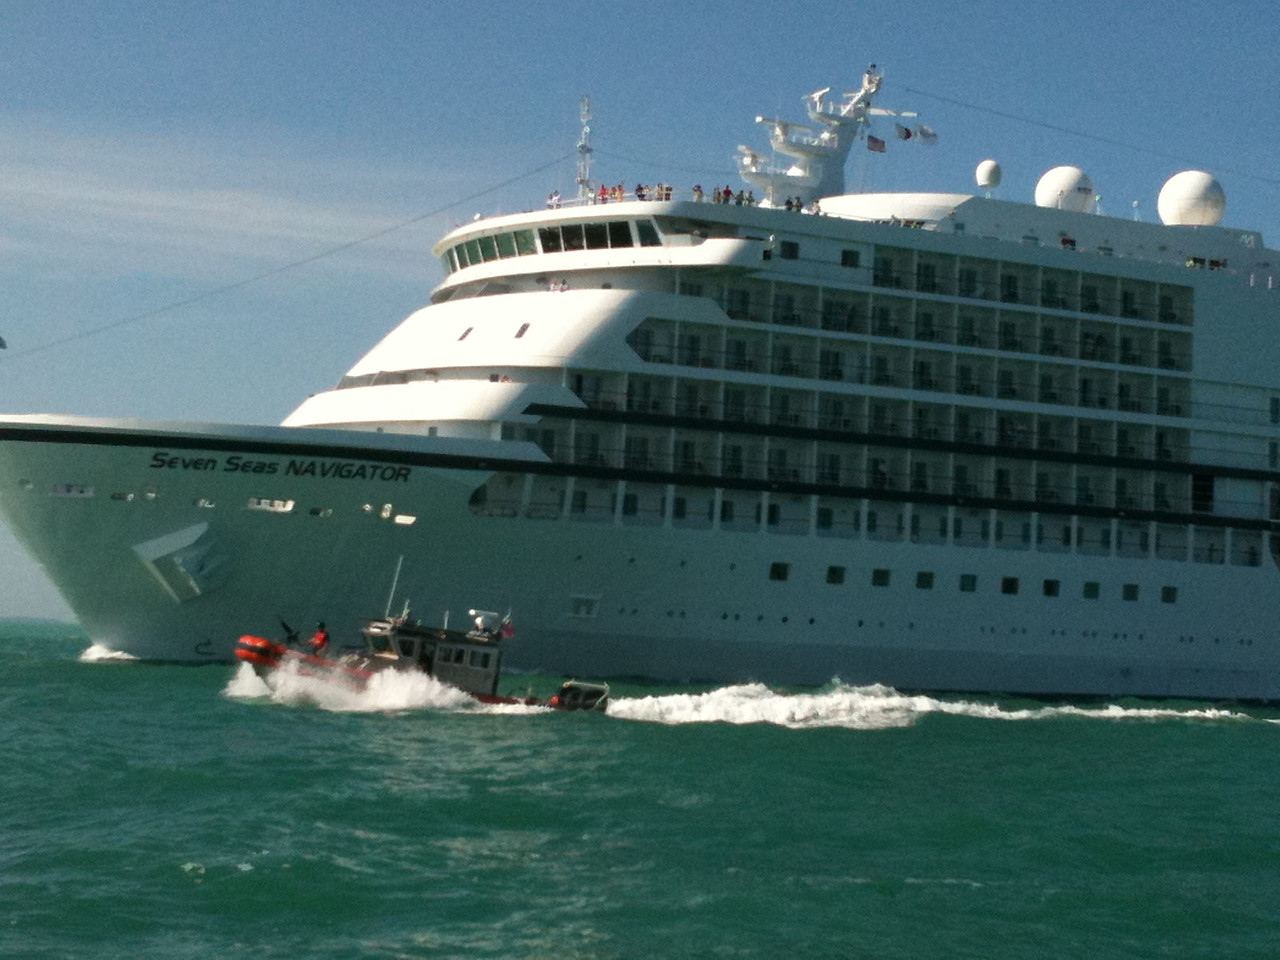 Note the armed escort for the cruise ship coming out of Key West.